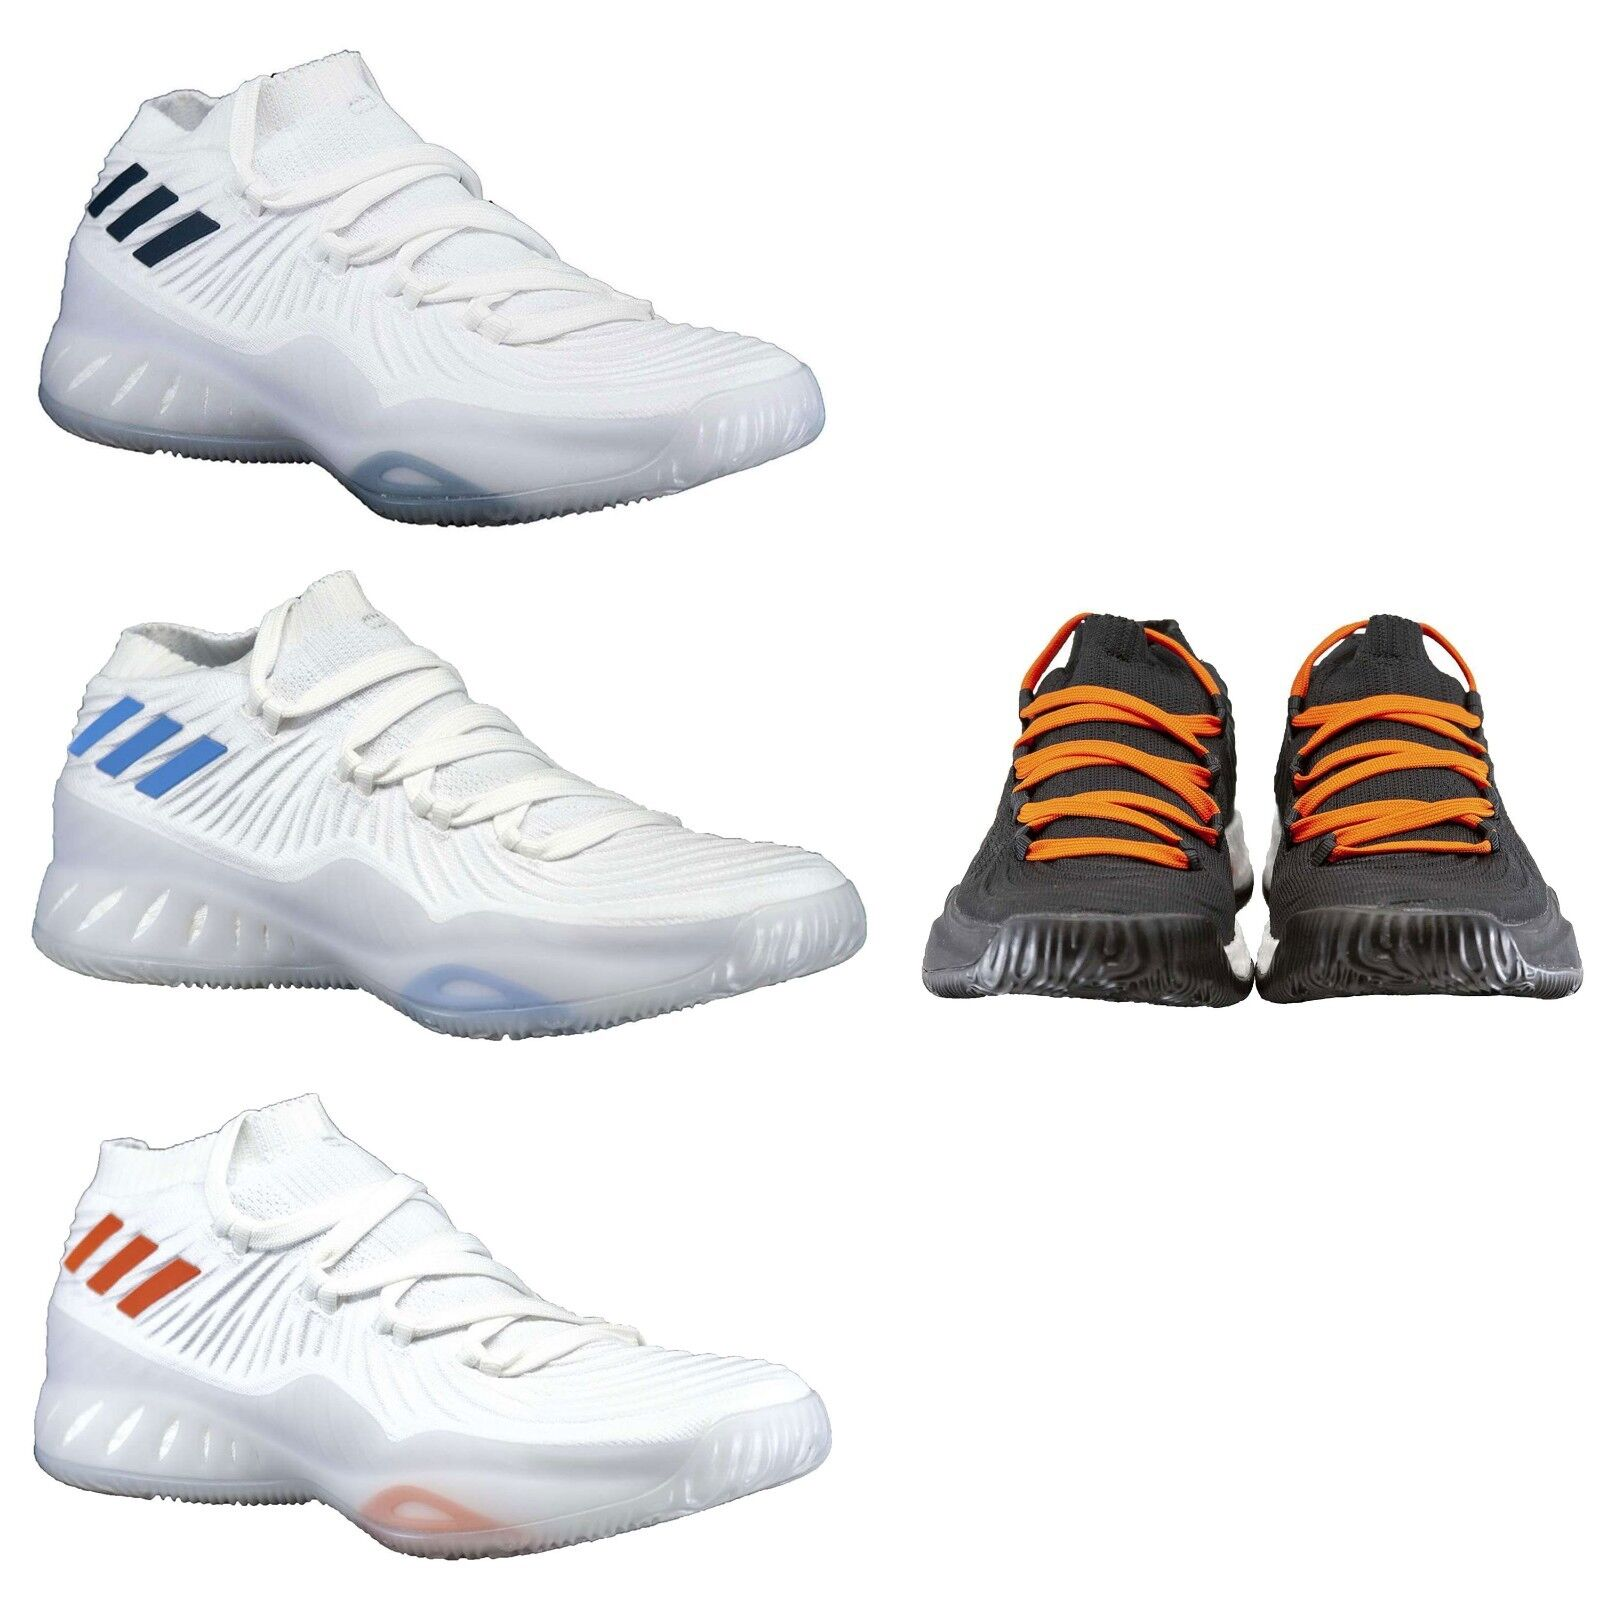 Adidas Men's Shoes SM Crazy Explosive Low NBA/NCAA Lace Up Basketball Shoes